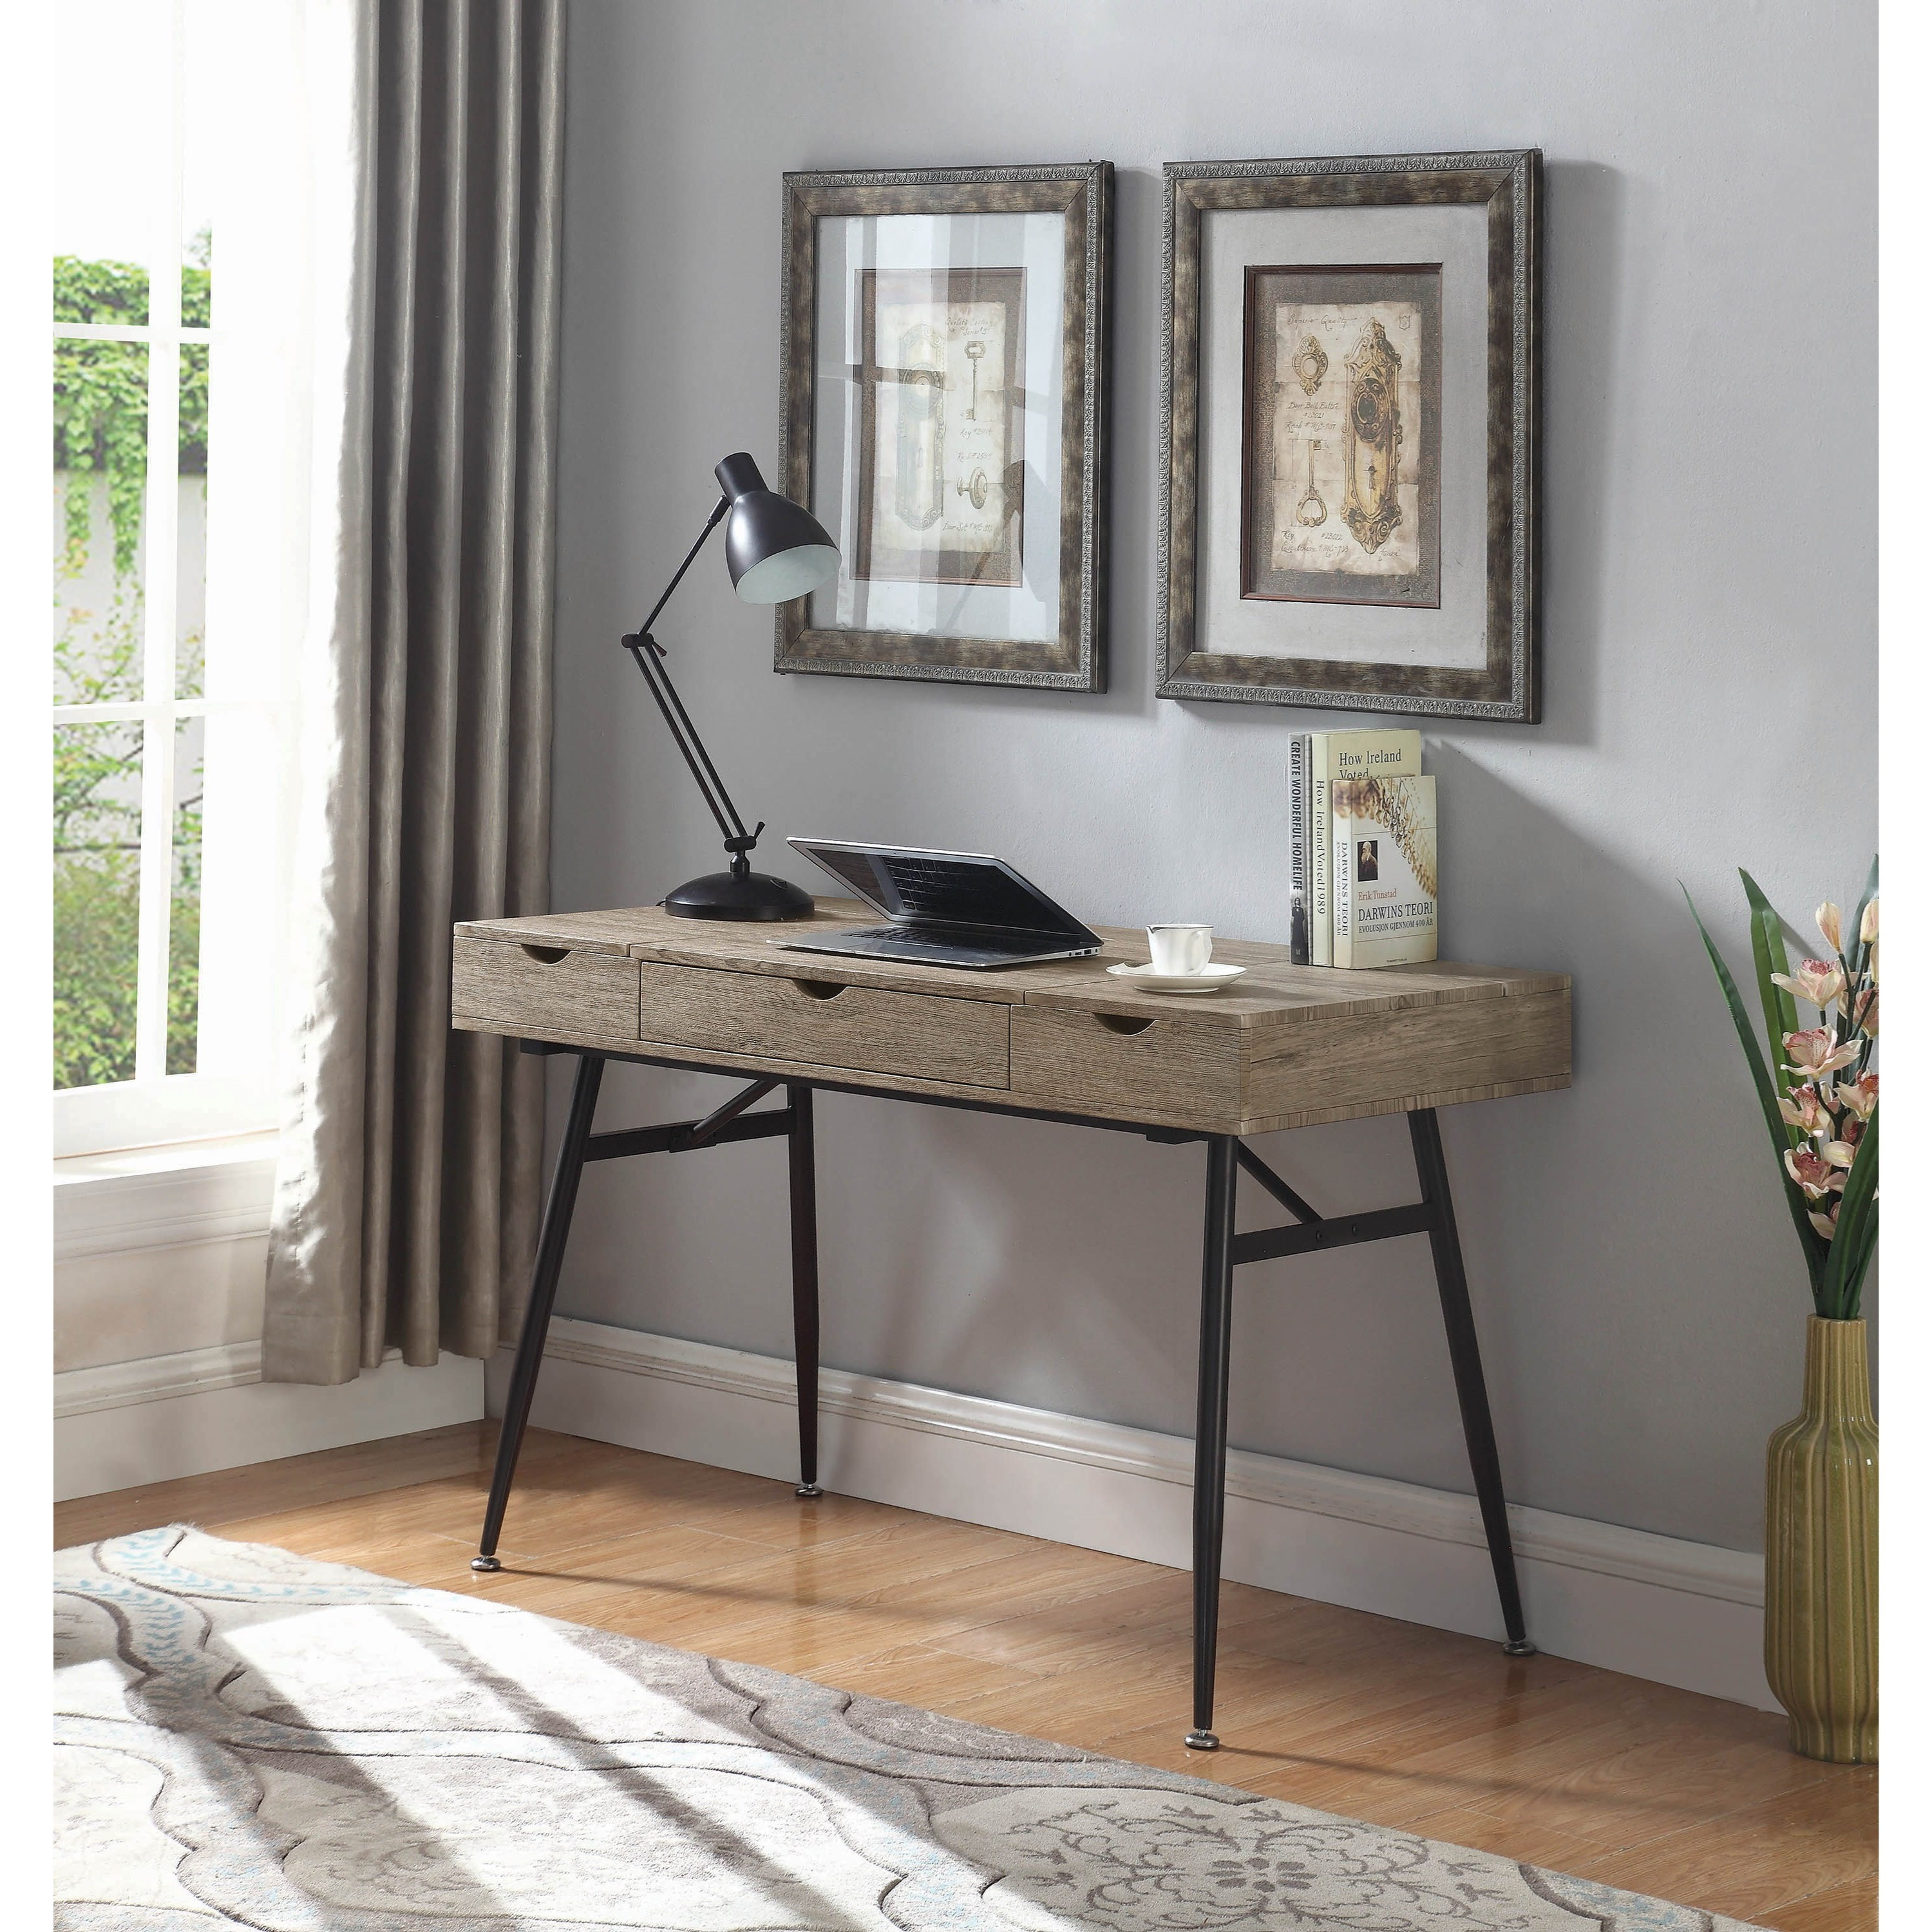 Office Furniture: Lift-Top Writing Desk With Wire Management